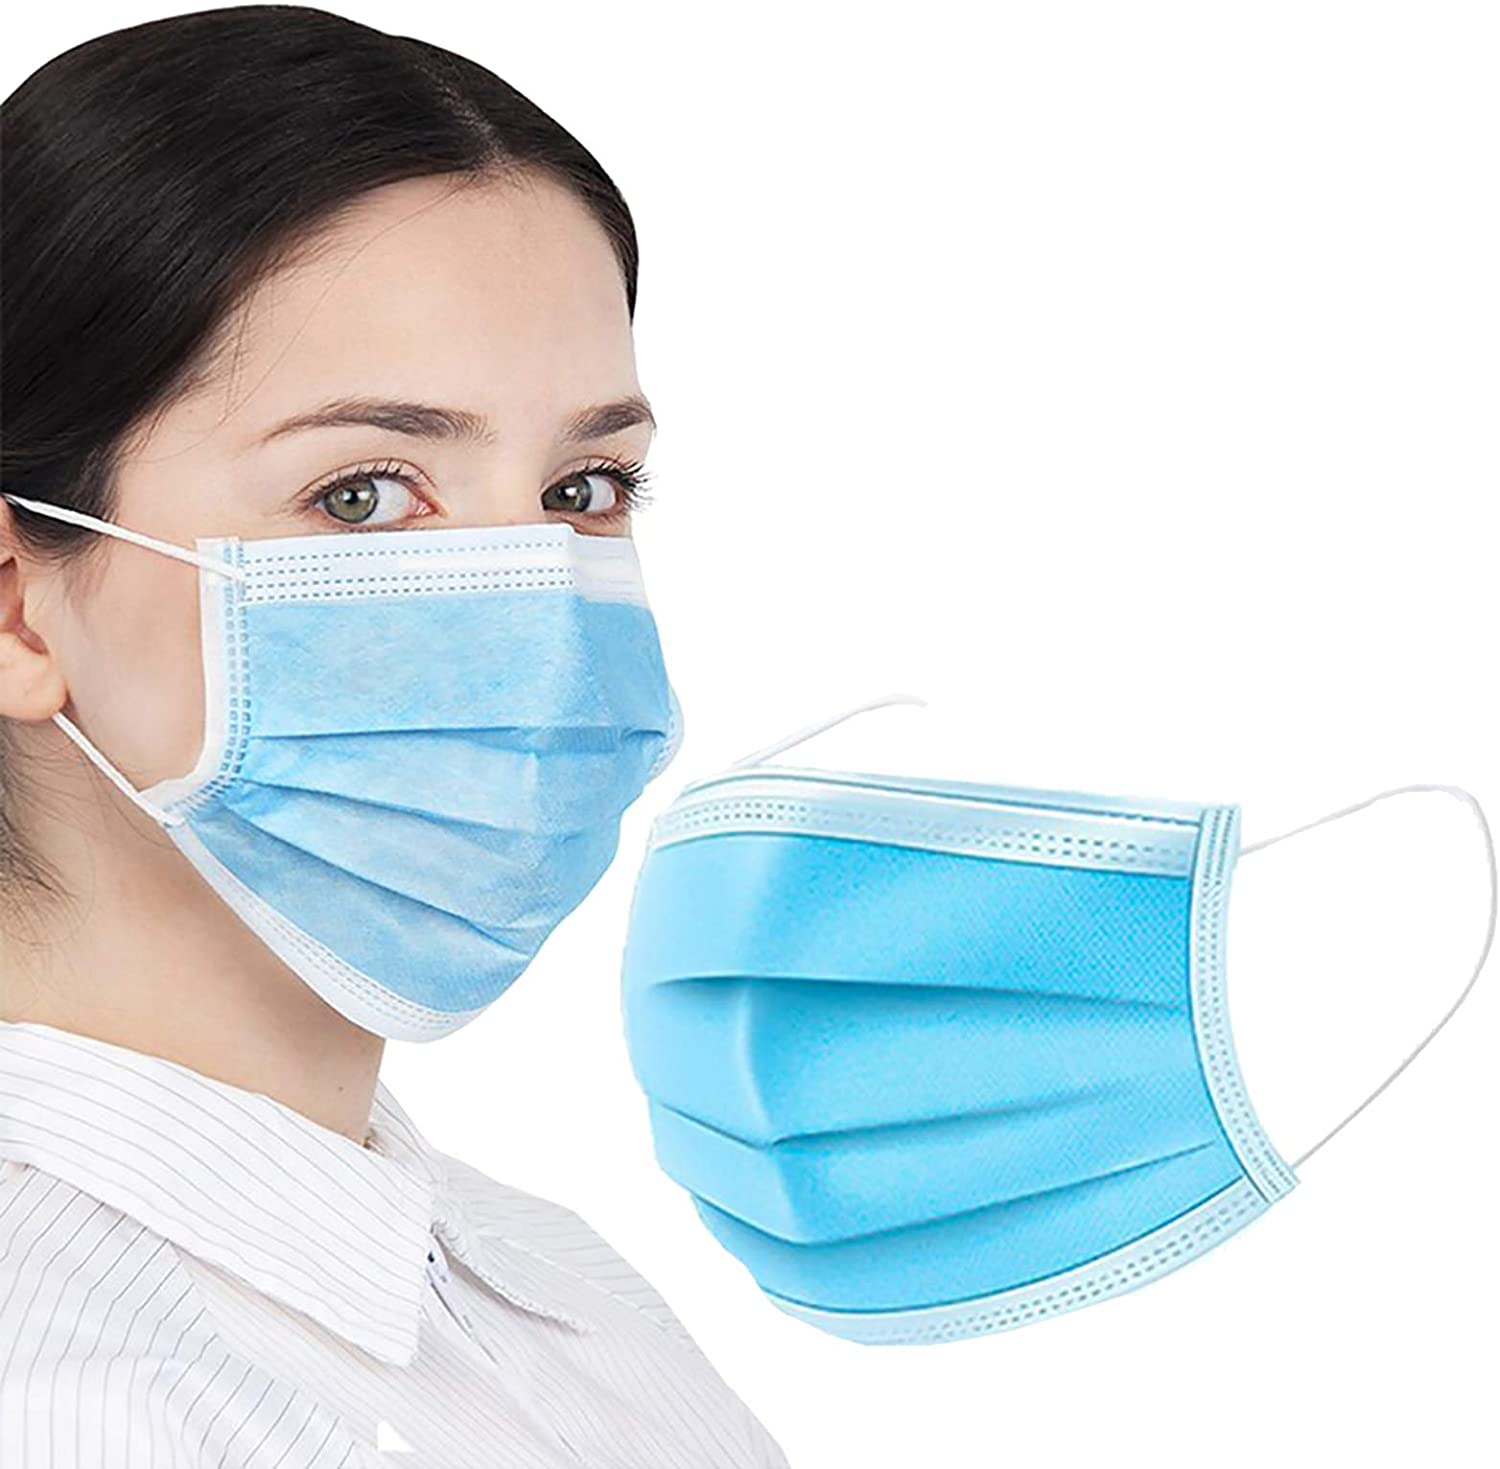 General Use Face Masks. Pack of 50 Blue Mouth and Nose Masks. Disposable 3-ply Mouth Covers. Face Guards with Adjustable Earloop for Outdoor, Home, Office. Unisex Dust Mask Adult.